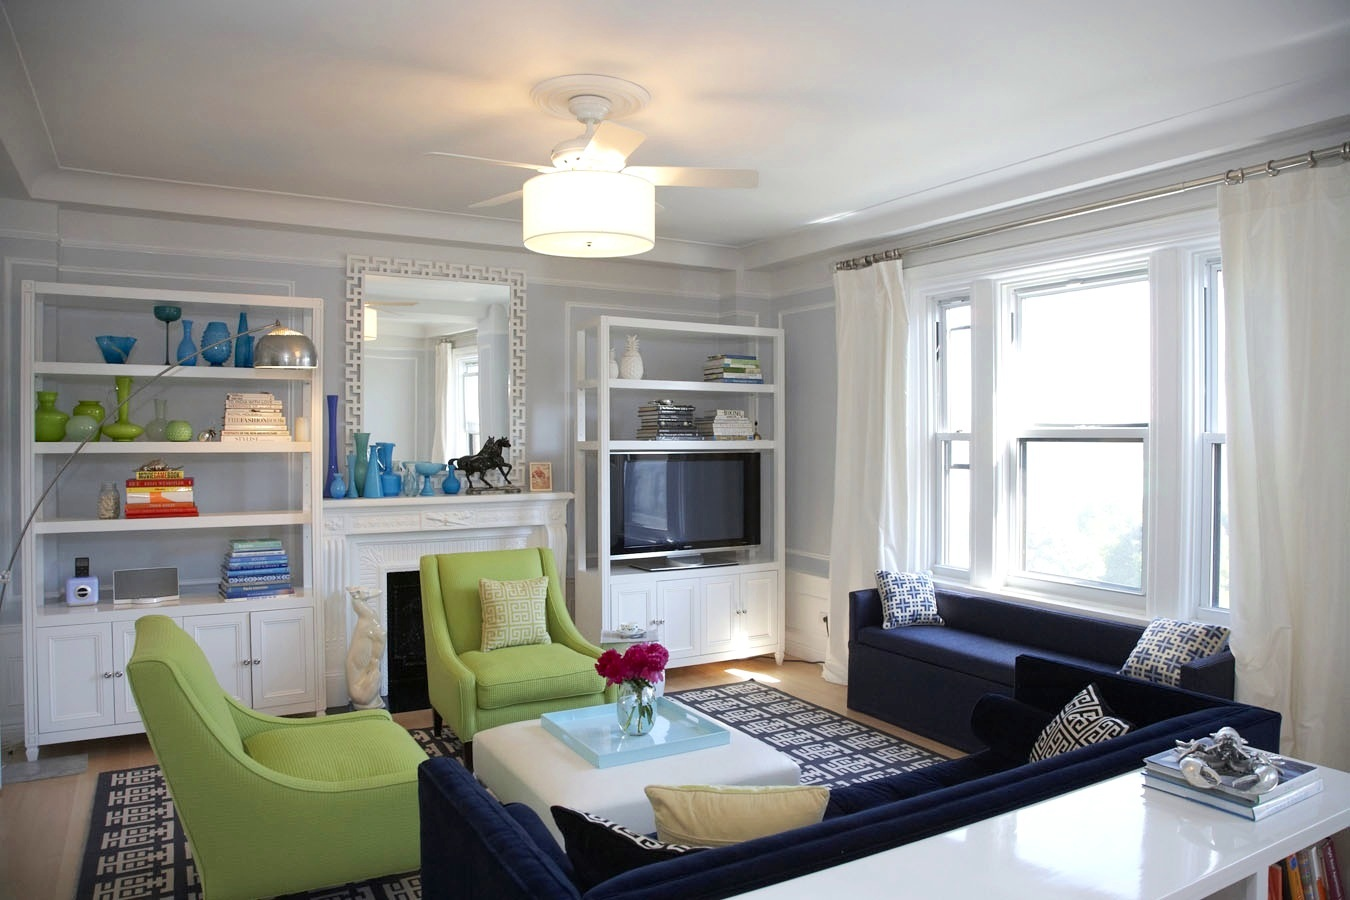 See this house nyc decor enthusiast decorates her own delightful dwelling nbaynadamas for Navy blue living room furniture